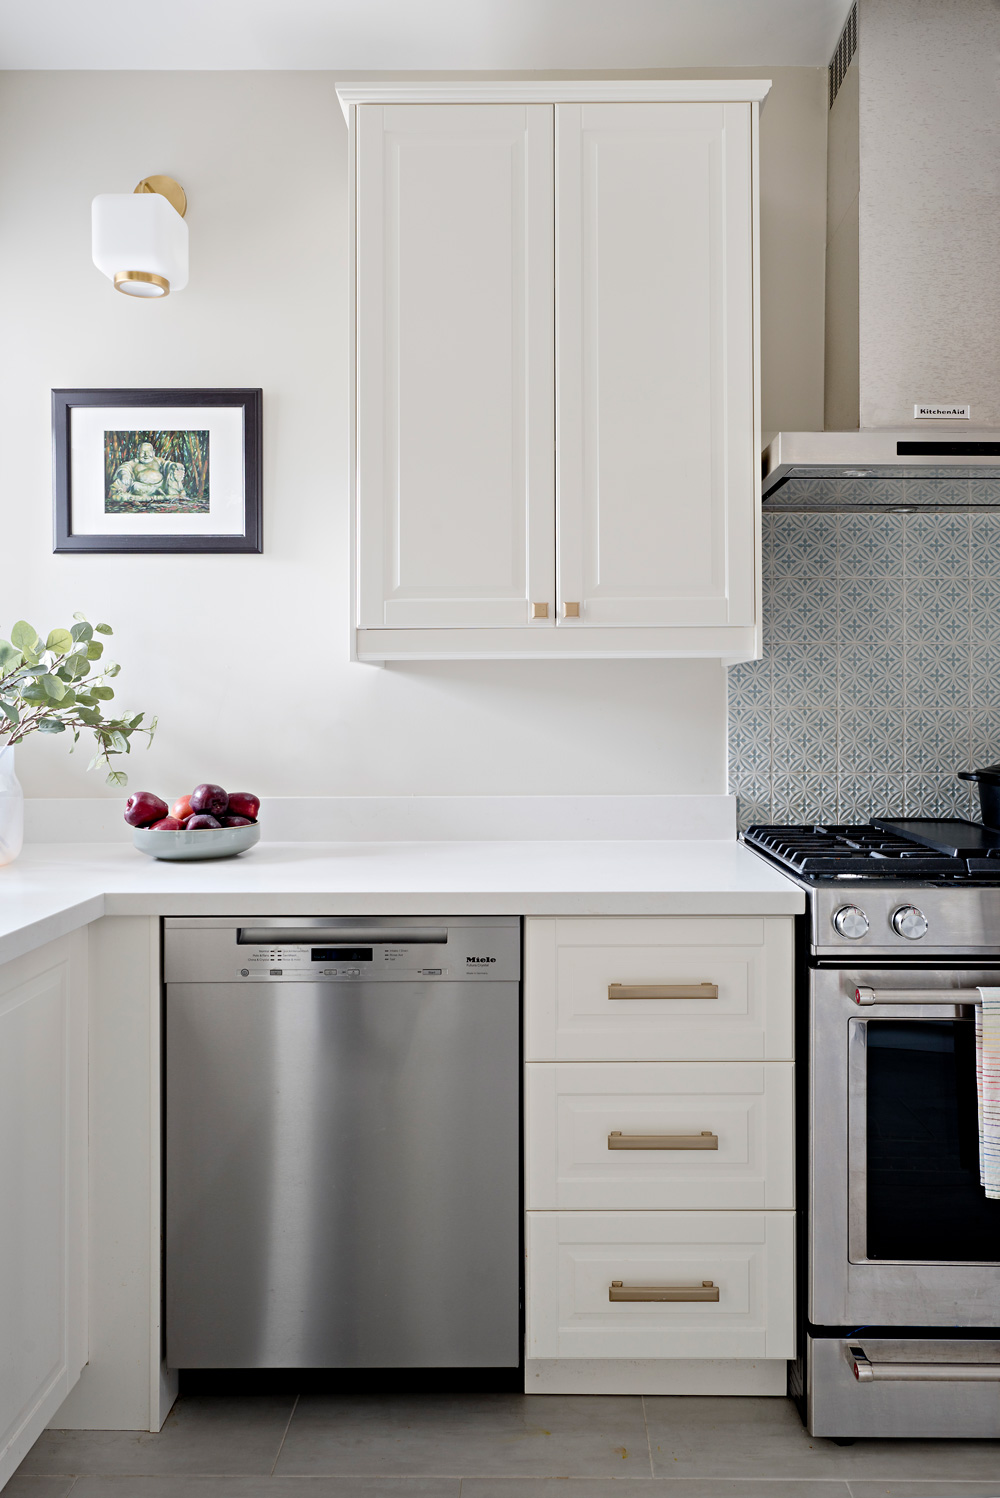 Stainless steel appliances and brass accents, mixed metals in a creamy white kitchen.